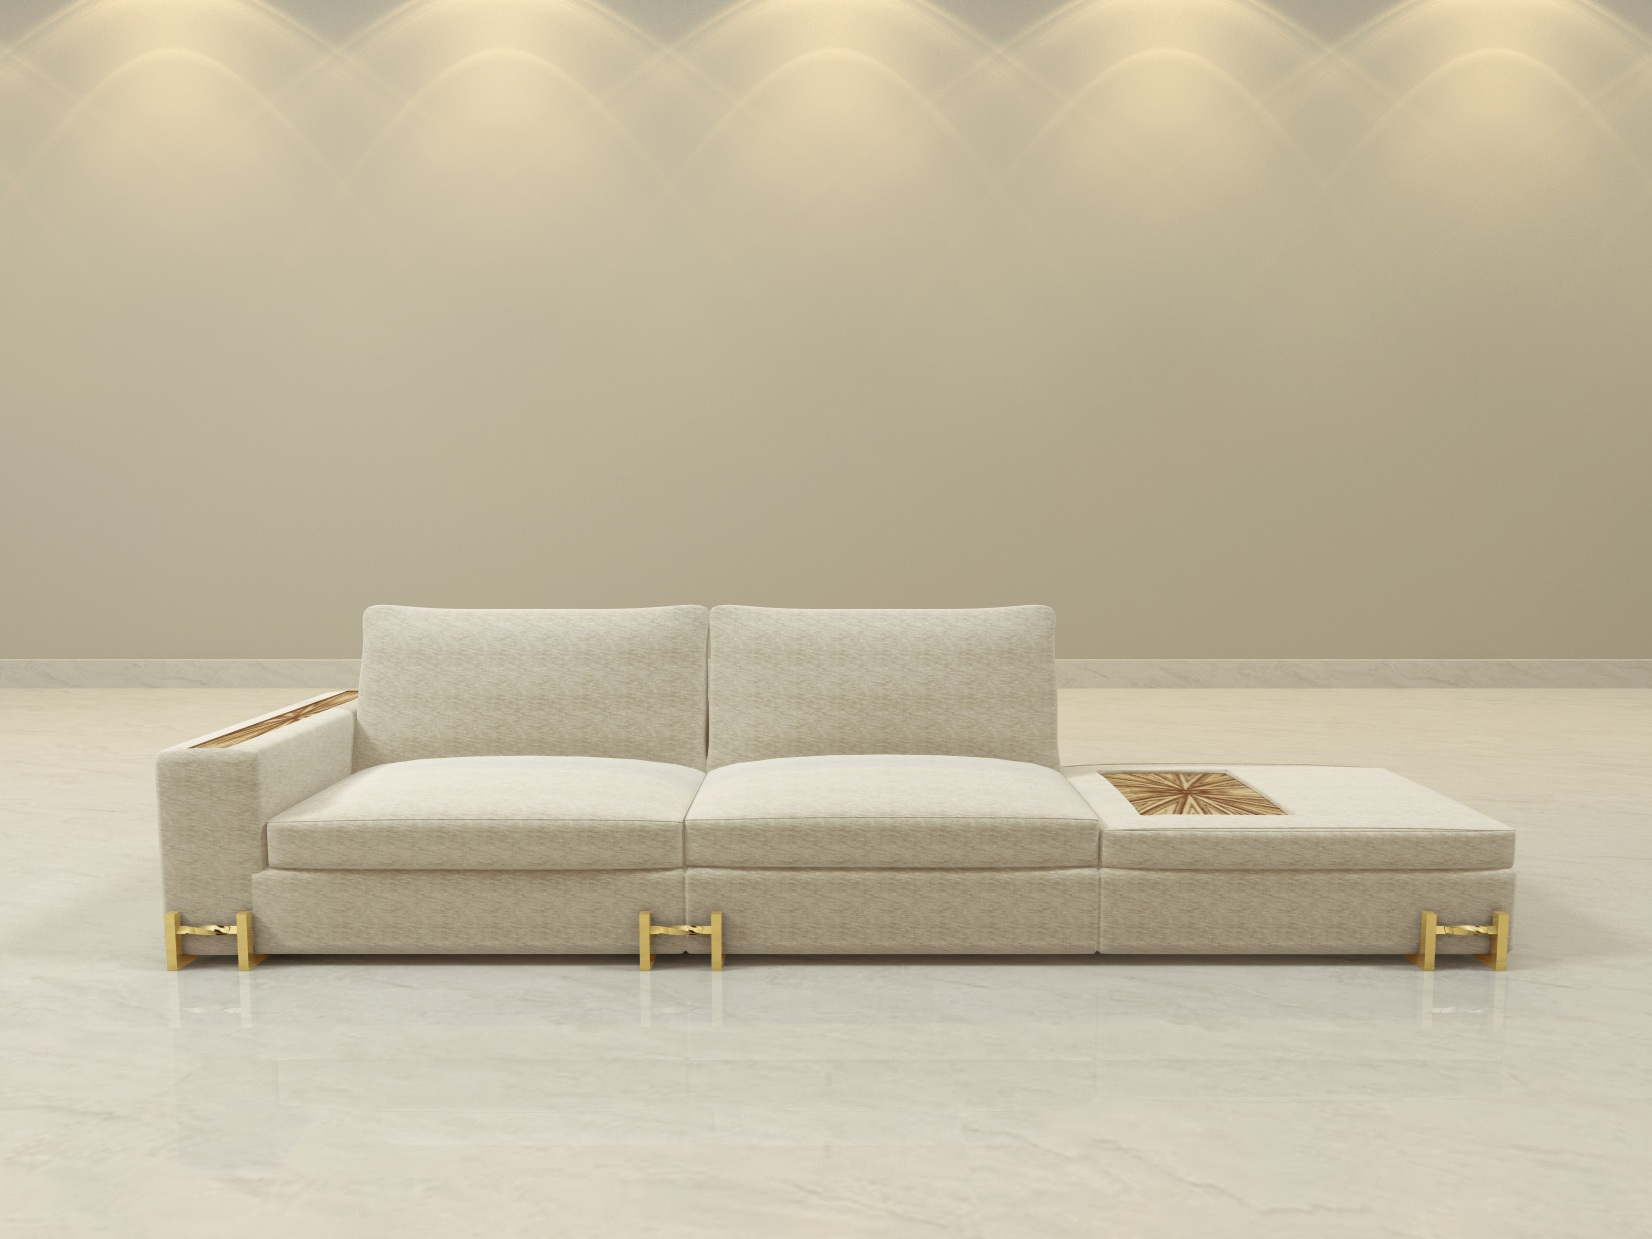 "The Plaza Legacy Sofa - Overall Dimensions: 129"" long x 37 1/2"" deep x 32"" tall. Pricing and more information contact us."